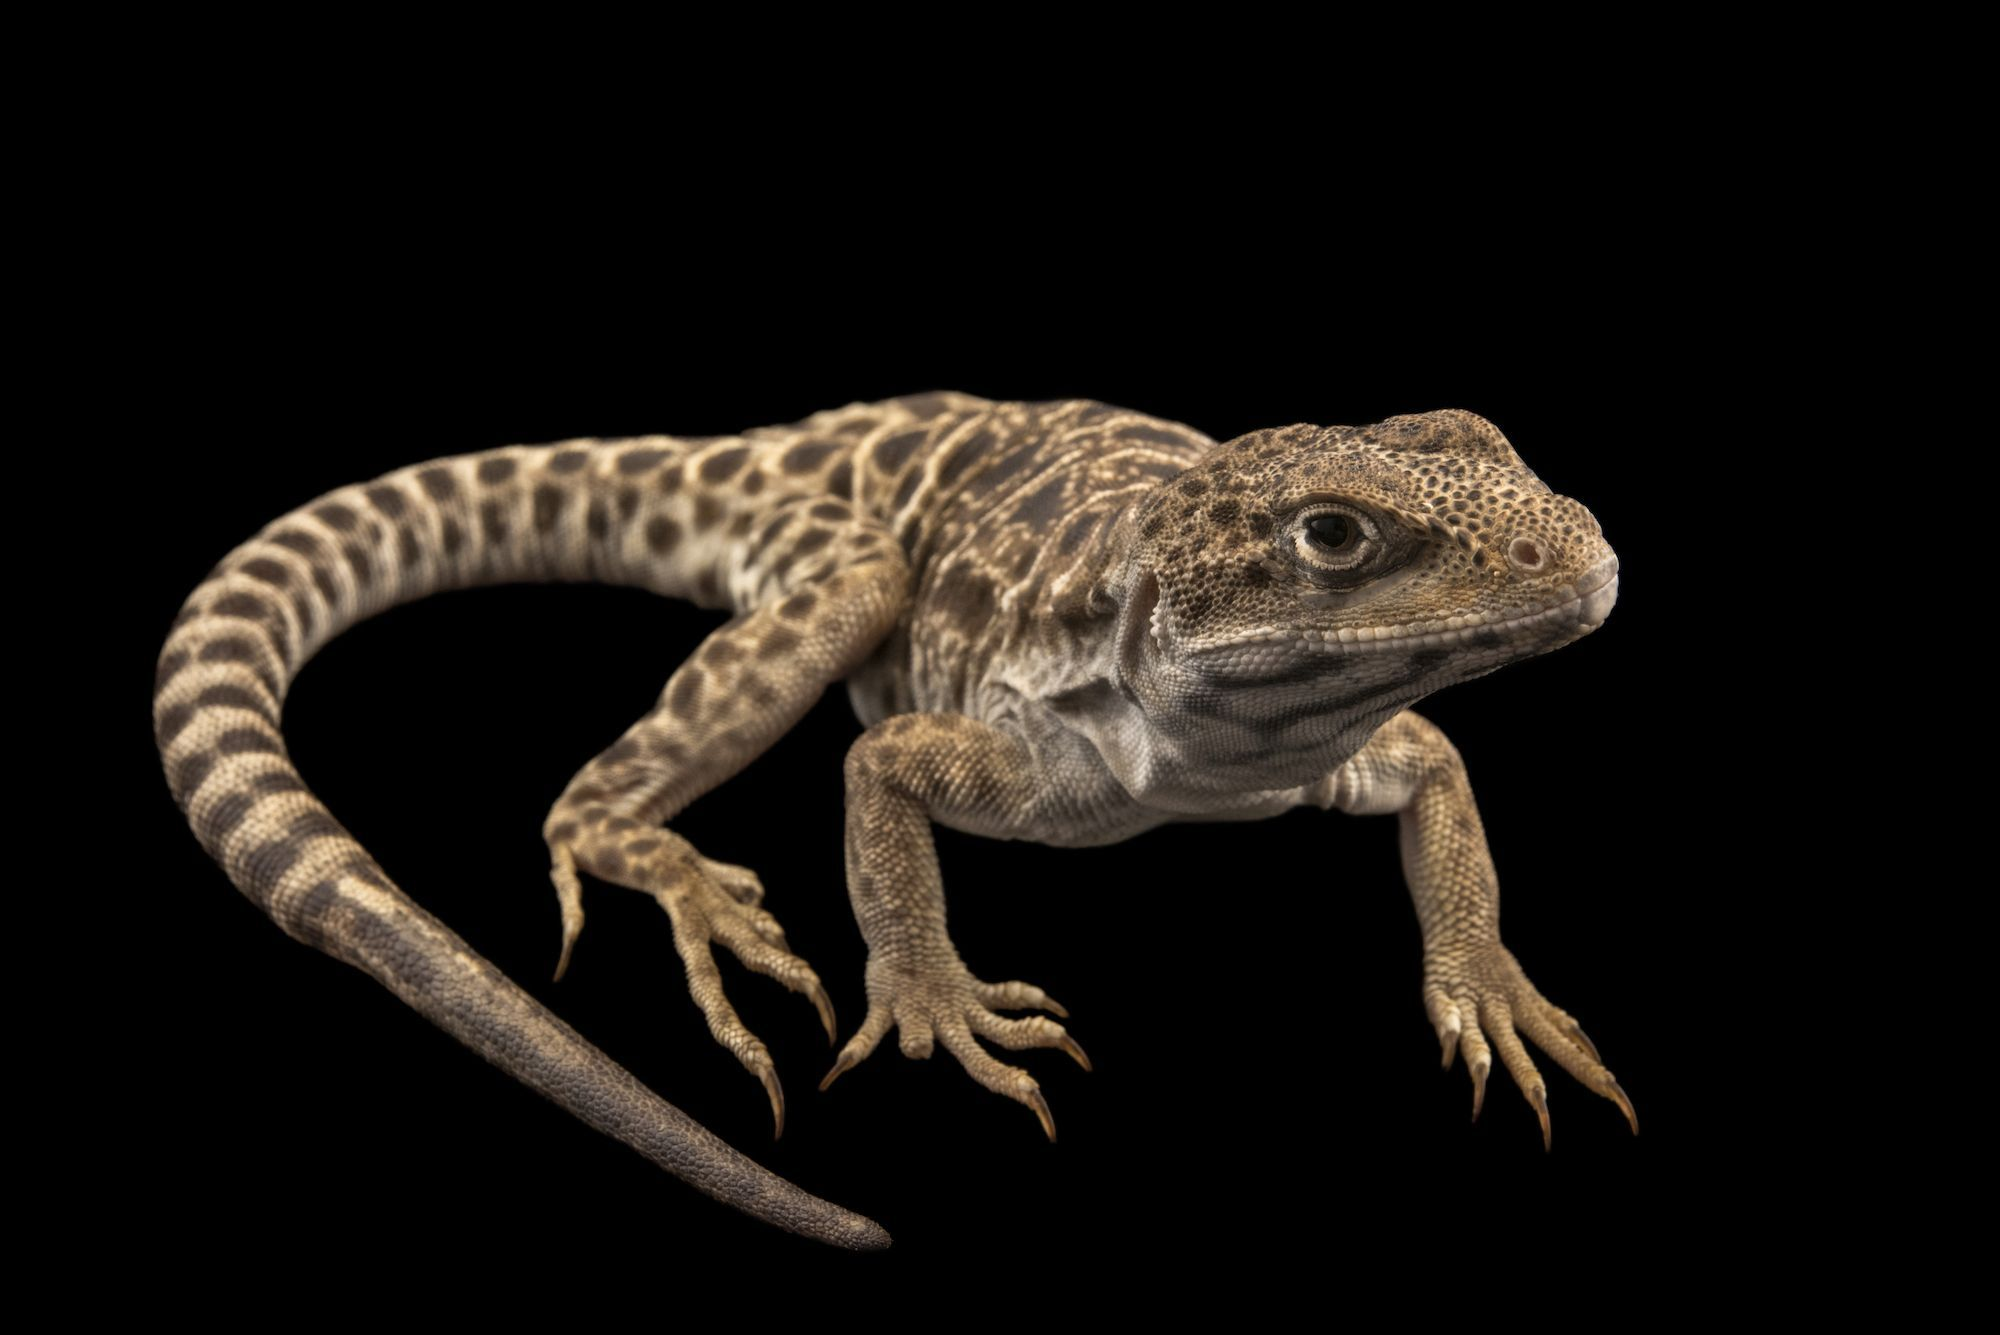 Photo Ark: Long-Nosed Leopard Lizard | National Geographic Society